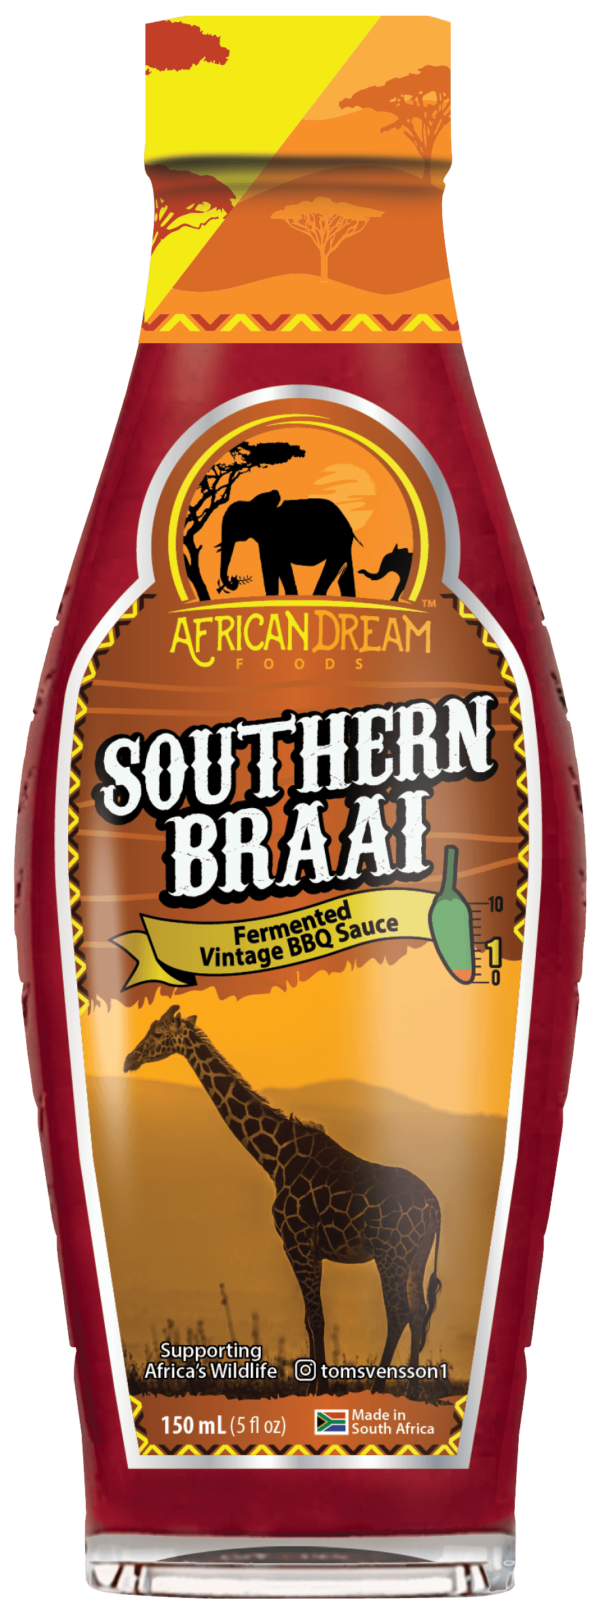 21-010 Southern Braai (Chilli BBQ Sauce) 210 – FRONT MOCK UP WS